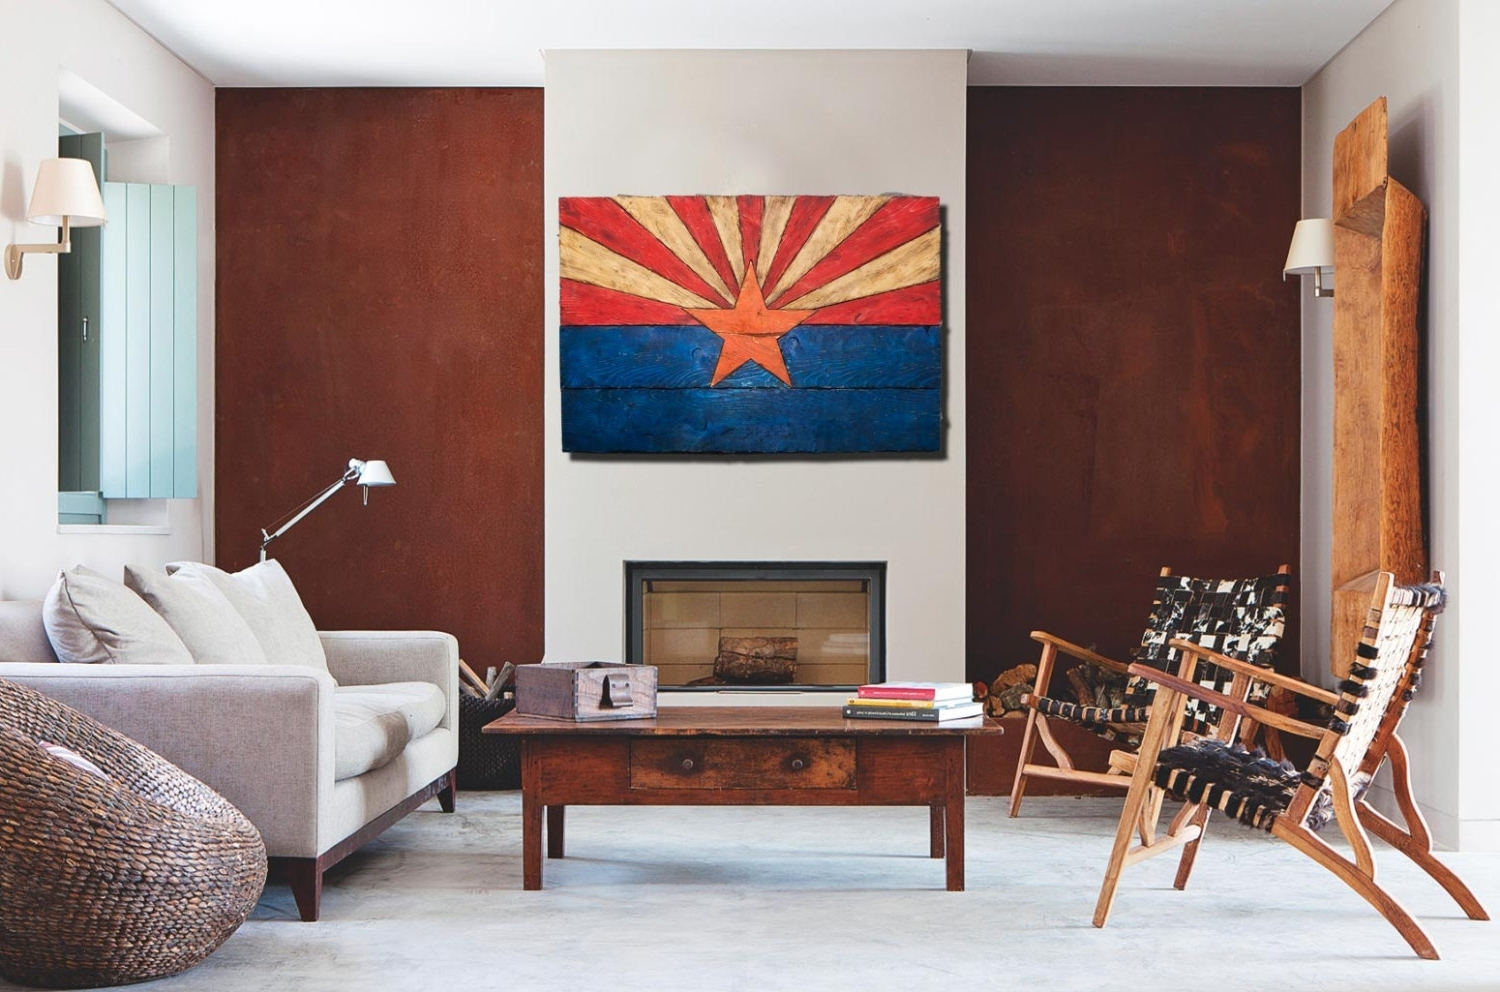 Favorite Arizona Flag, Handmade, Distressed Painted Wood, Vintage, Art Regarding Arizona Wall Art (View 9 of 20)